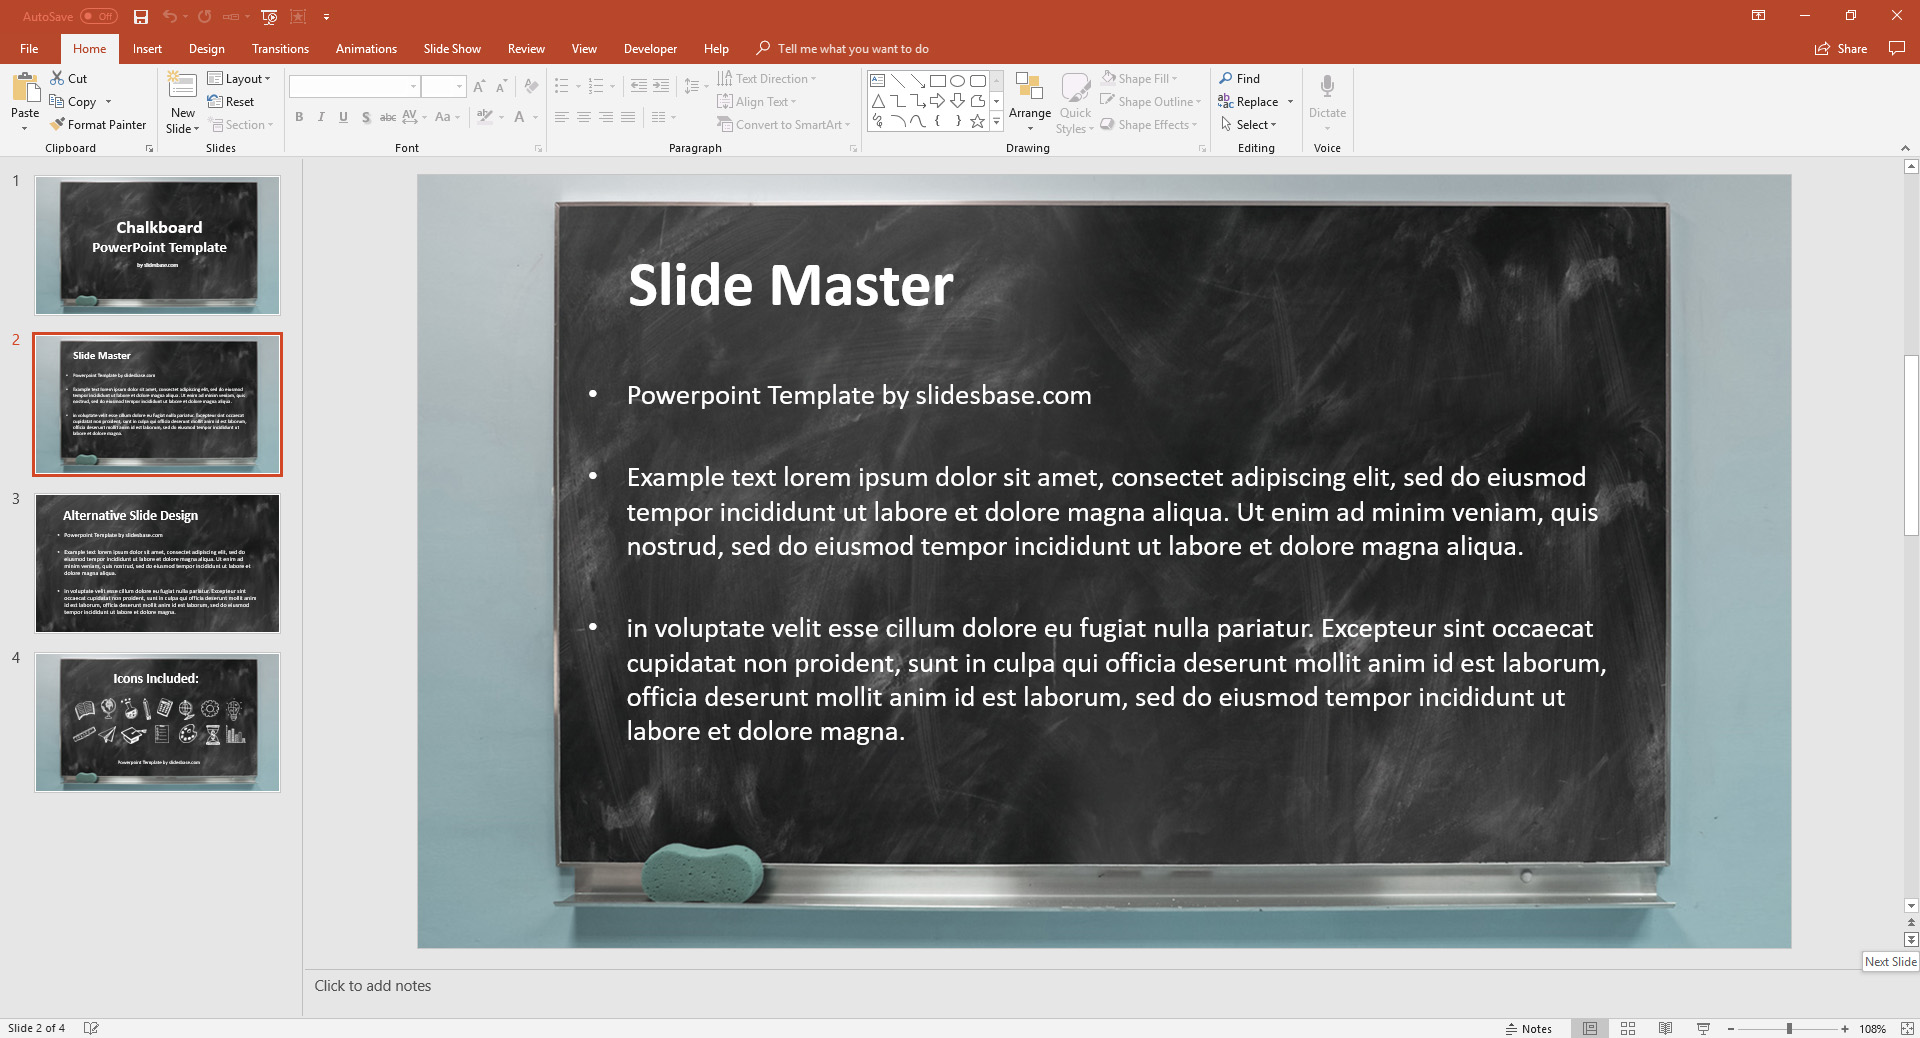 blackboard-chalkboard-ppt-powerpoint-template-presentation-for-prezi-next